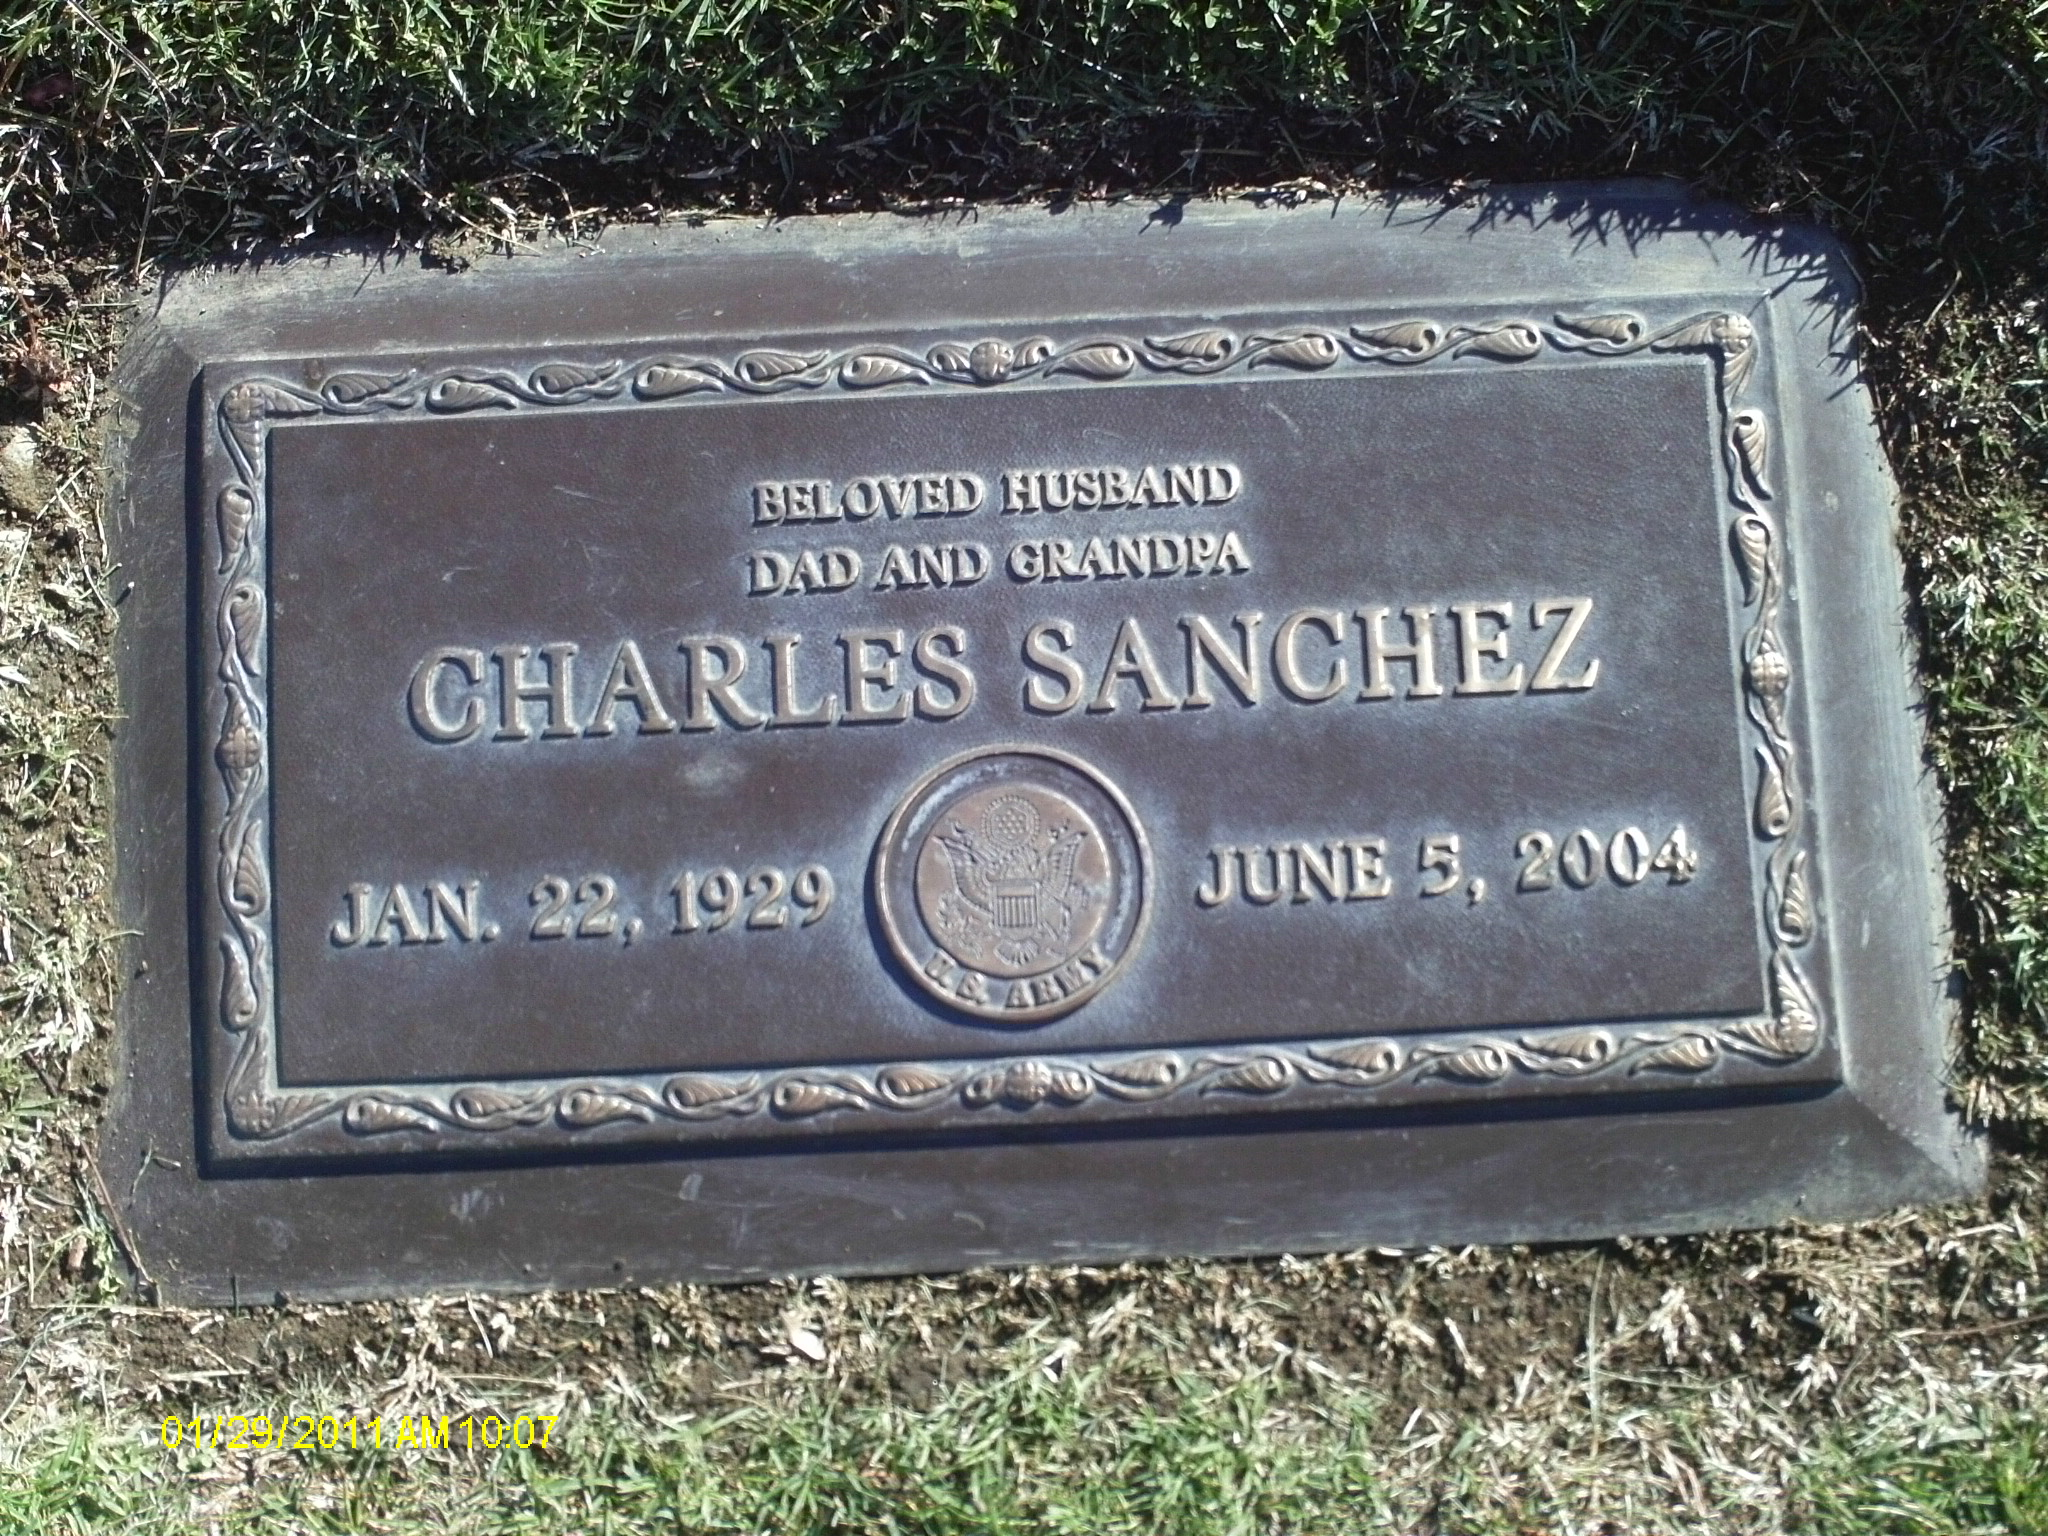 Charles Sanchez (Photo owned by author and used with permission)